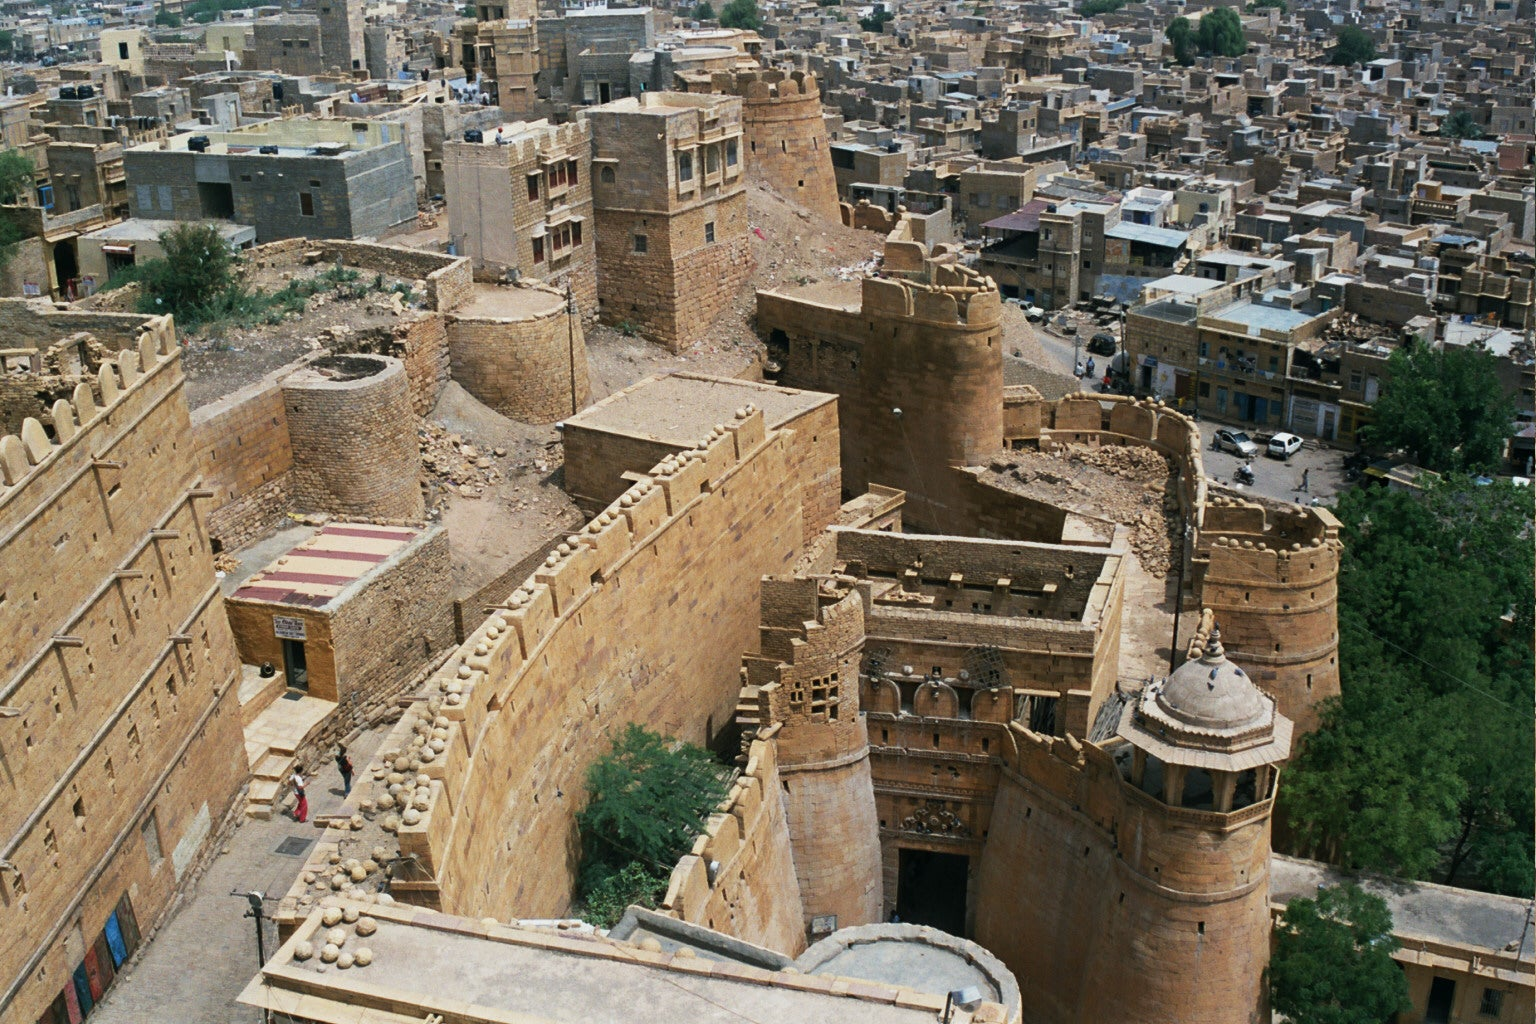 Top of the Jaisalmer Fort